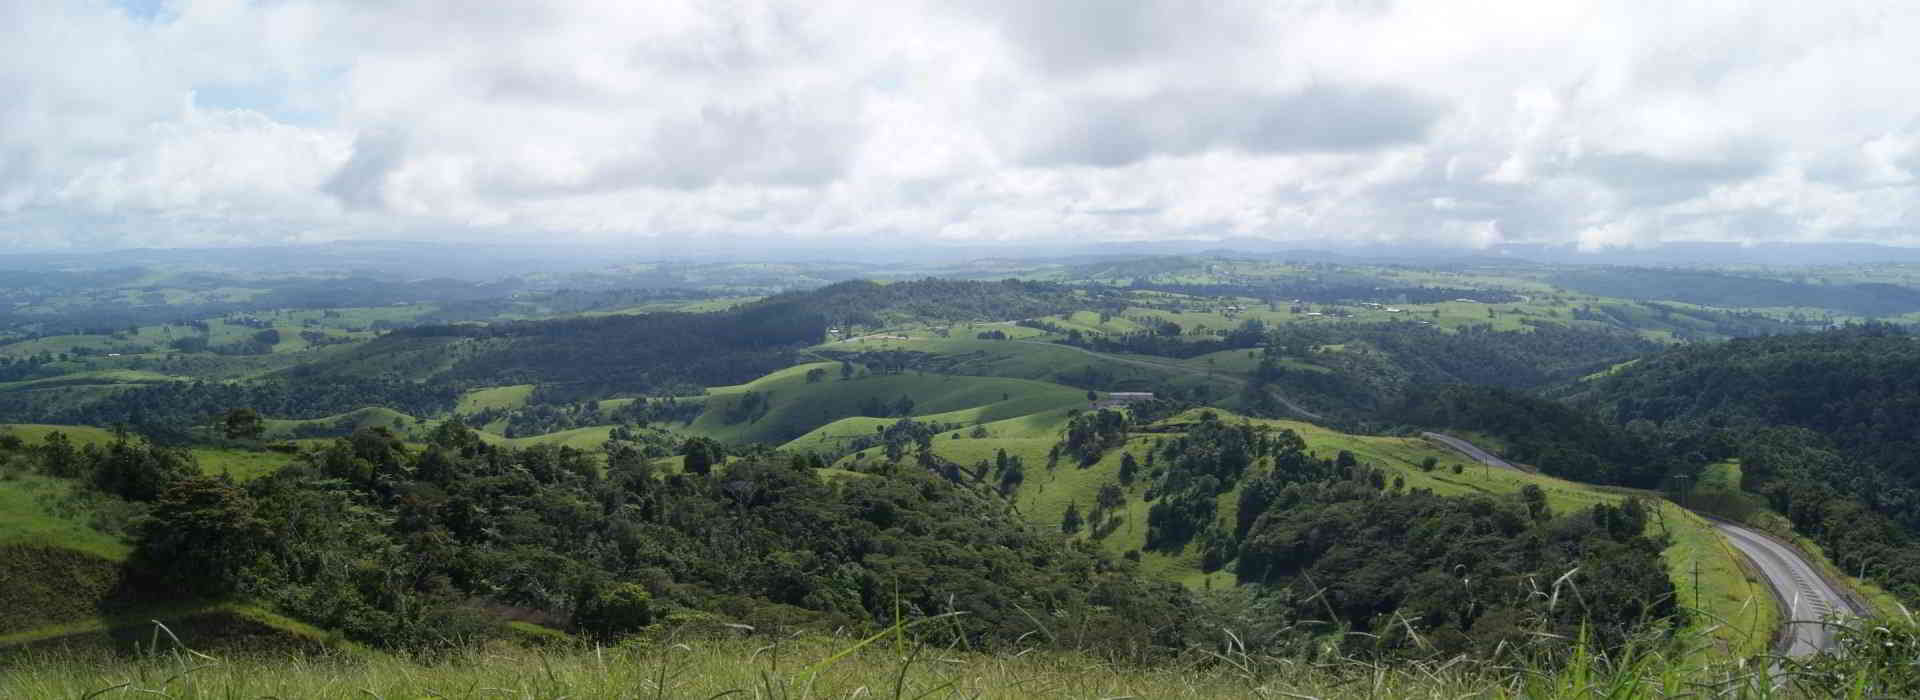 Rolling Hills of the Tablelands - TRC - Tablelands Regional Council